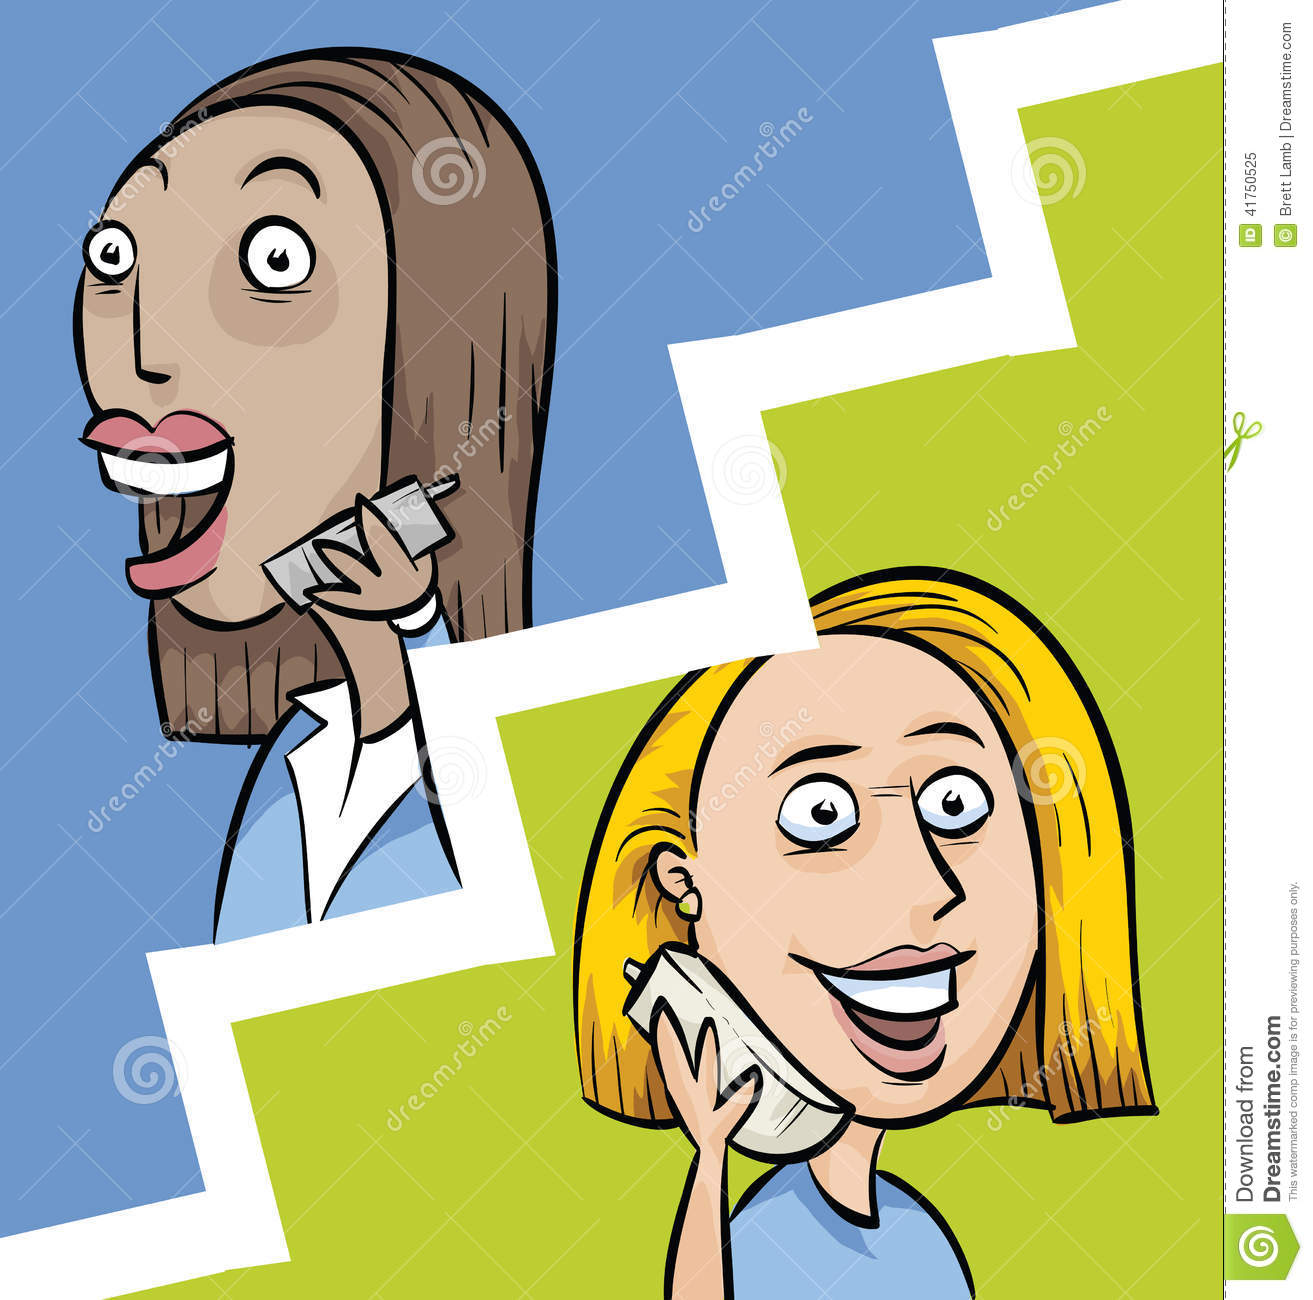 Irish Cartoon Of Two Women Talking Clipart - Clipart Suggest